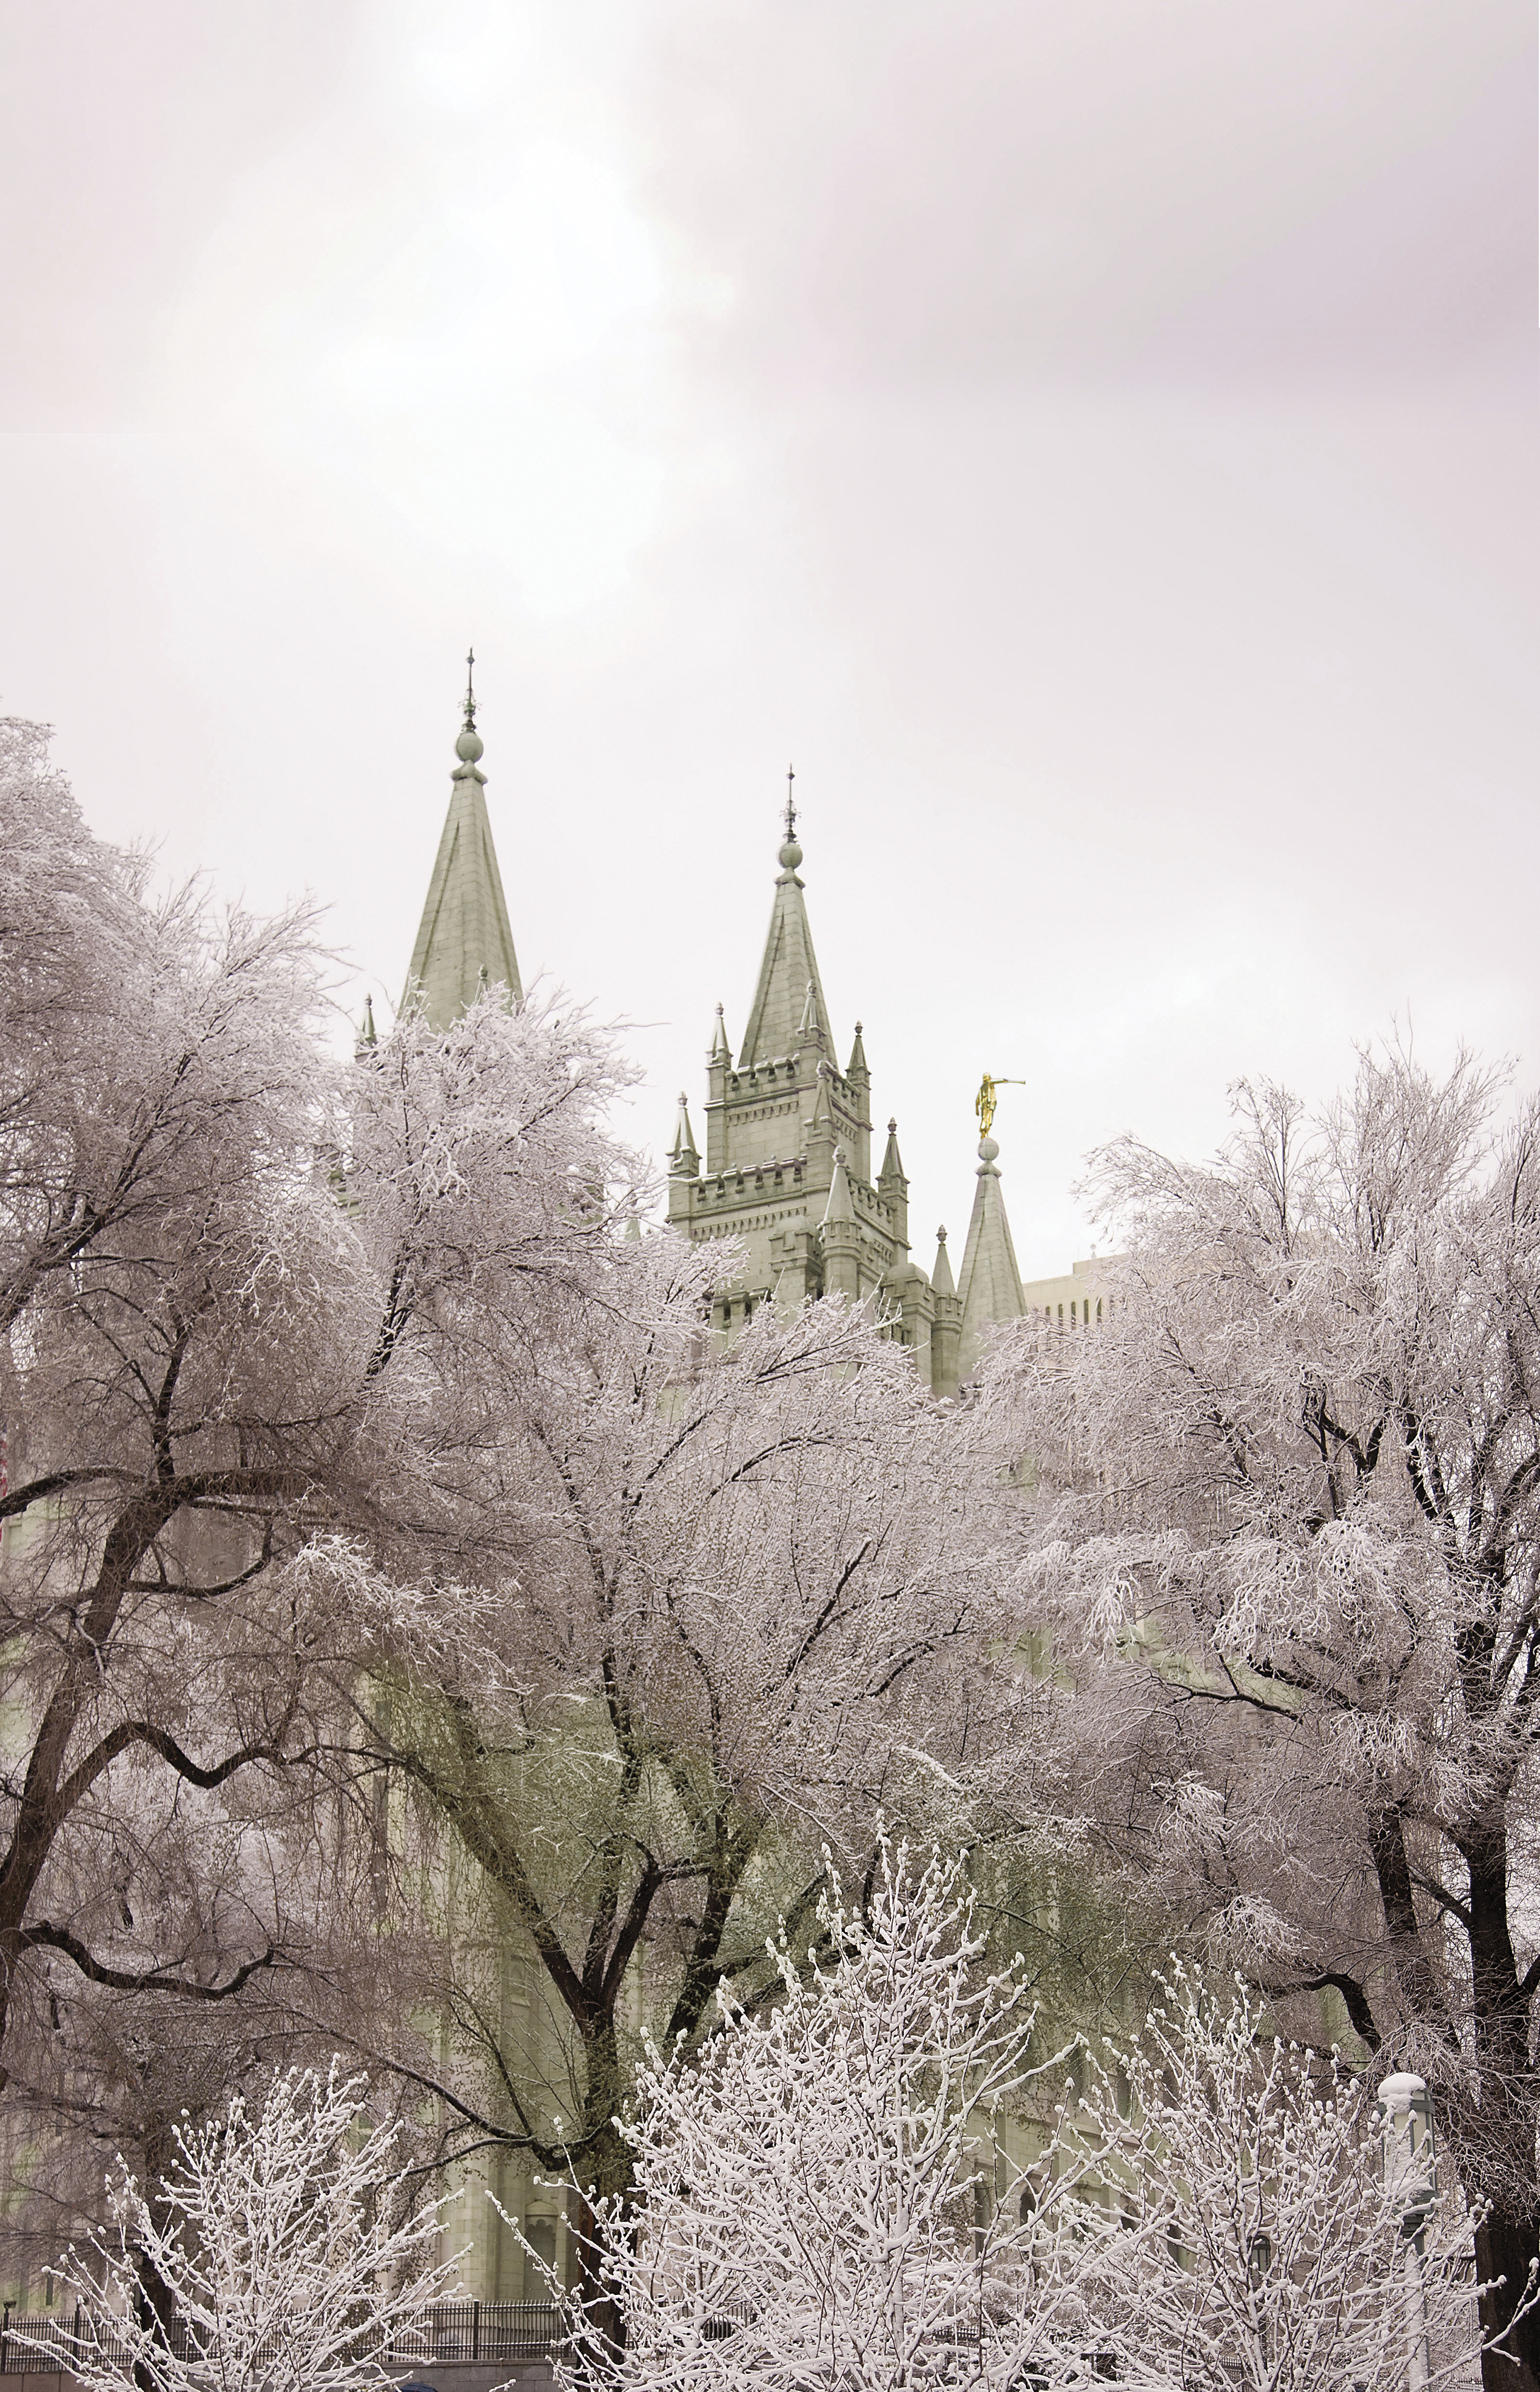 The Salt Lake Temple during winter, including the spires and scenery.